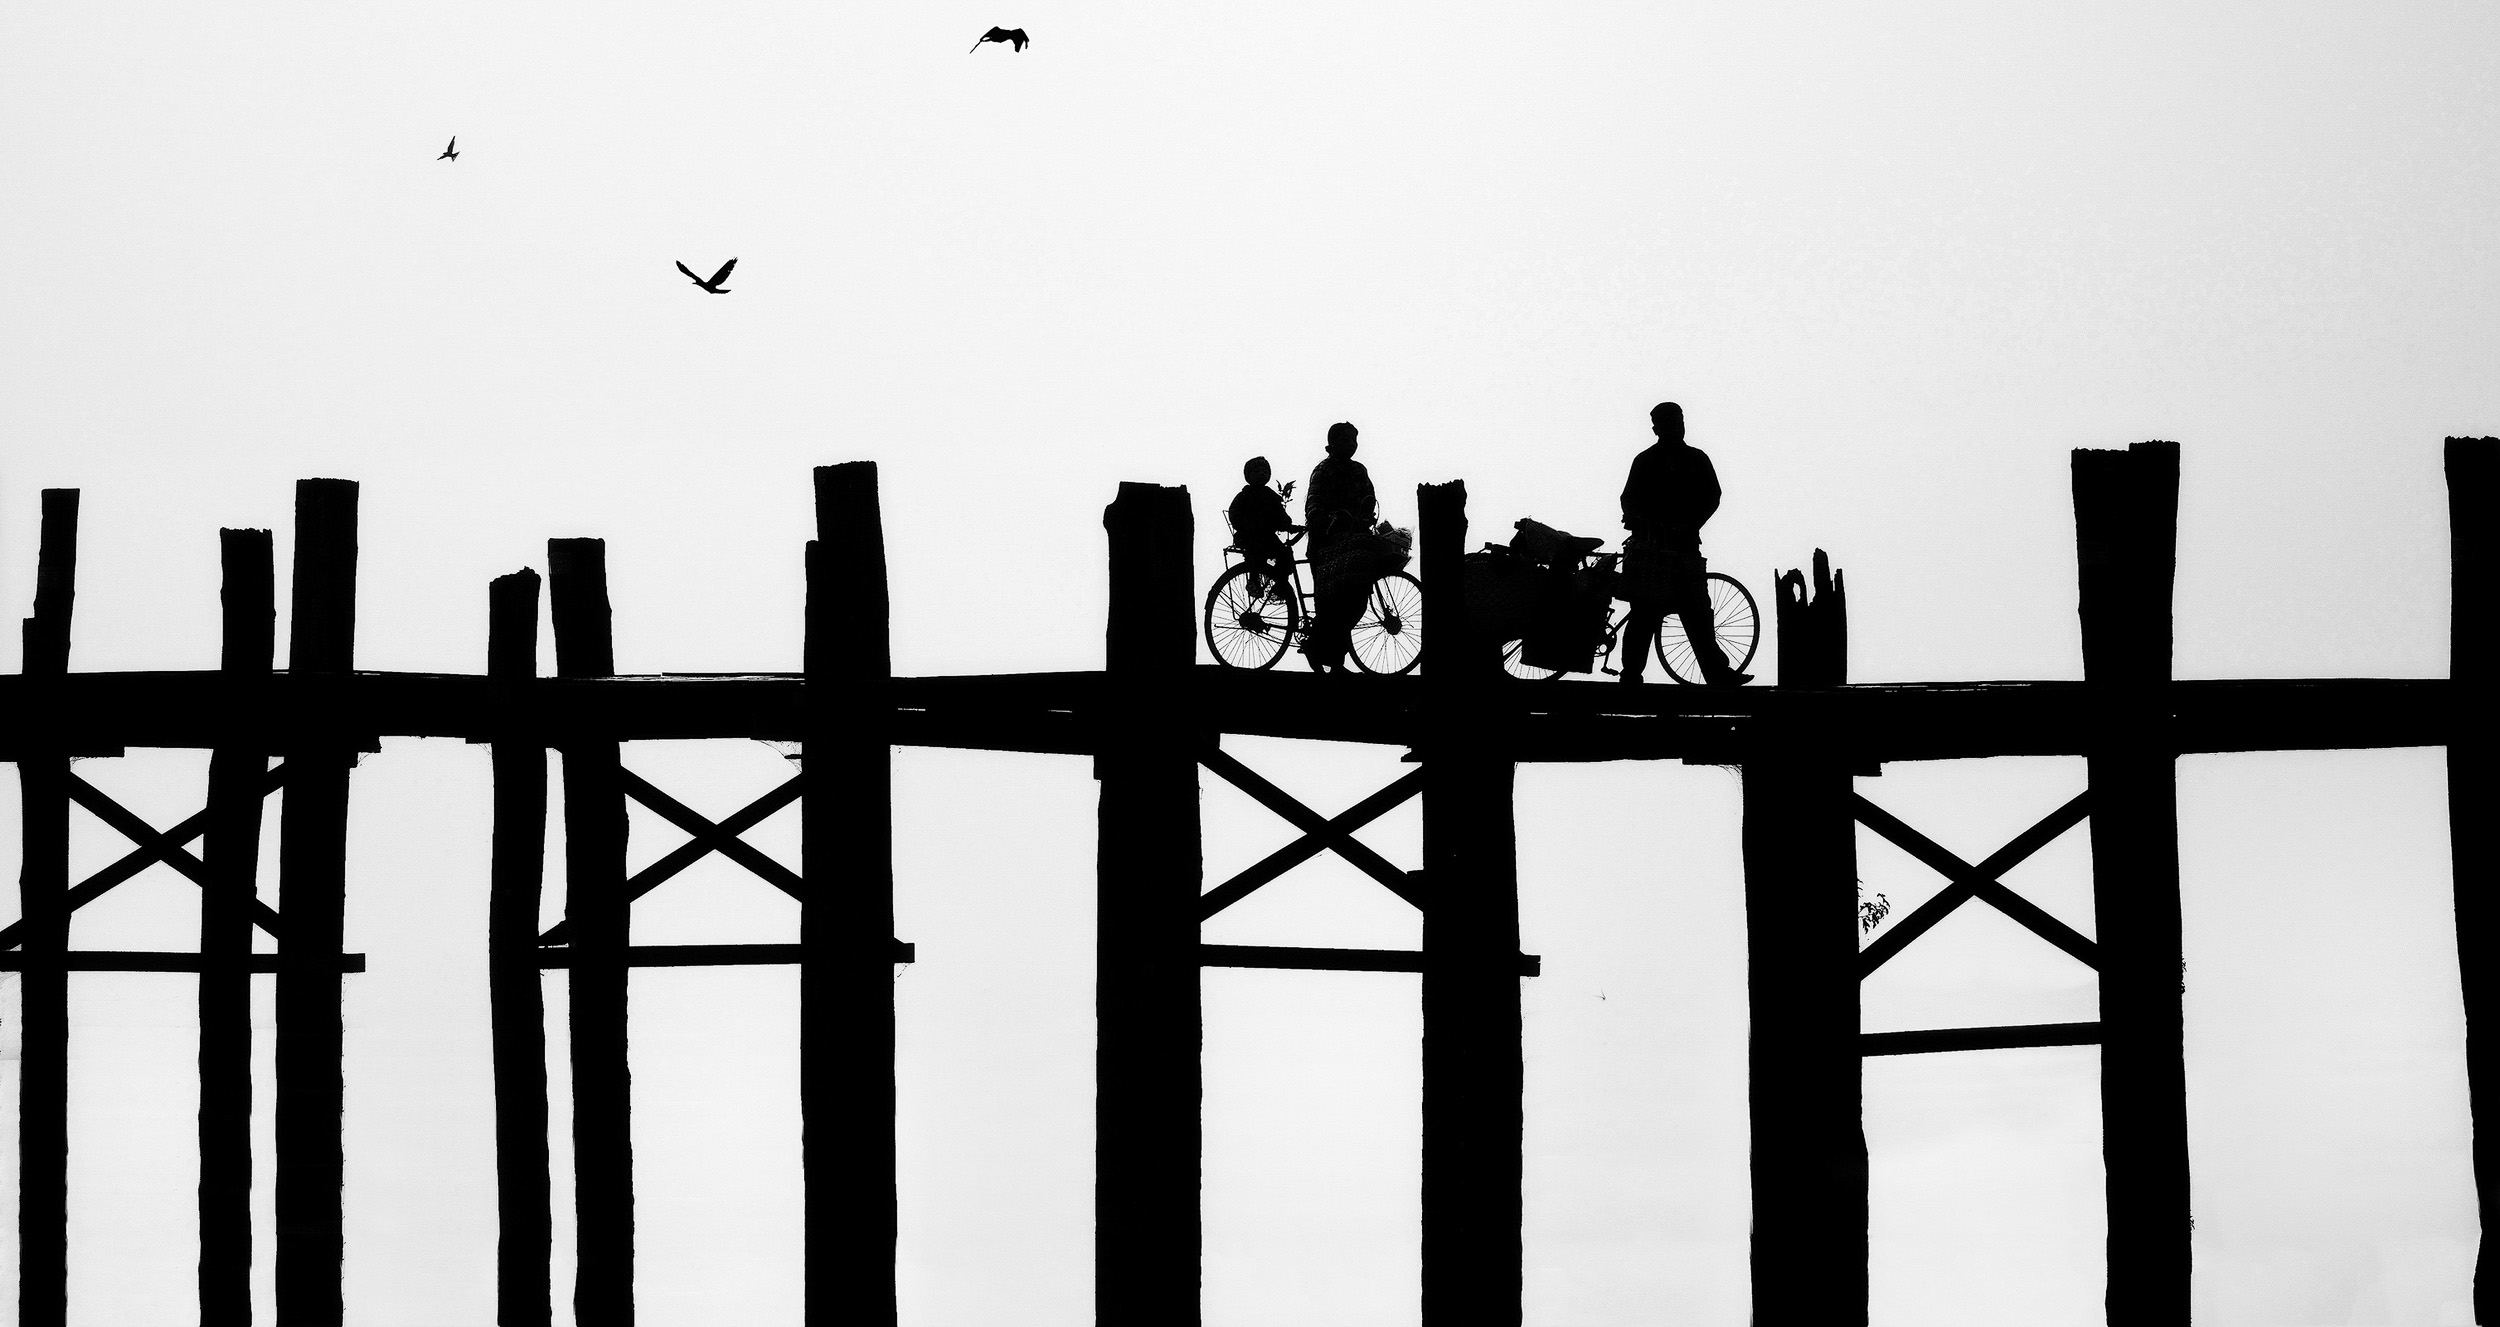 U Bein Bridge   The U Bein teak bridge across Tuang Tha Man lake in Amarapura, Mandalay, is the longest teak bridge in the world. Over a kilometer long and more than 150 years old, it spans the large lake and is an incredibly busy passageway connecting the two banks. I was there for dawn when it was (just a little) quieter, but even at that time the bridge thronged with people going about their business and monks crossing to get to some of the large monasteries in Amarapura.